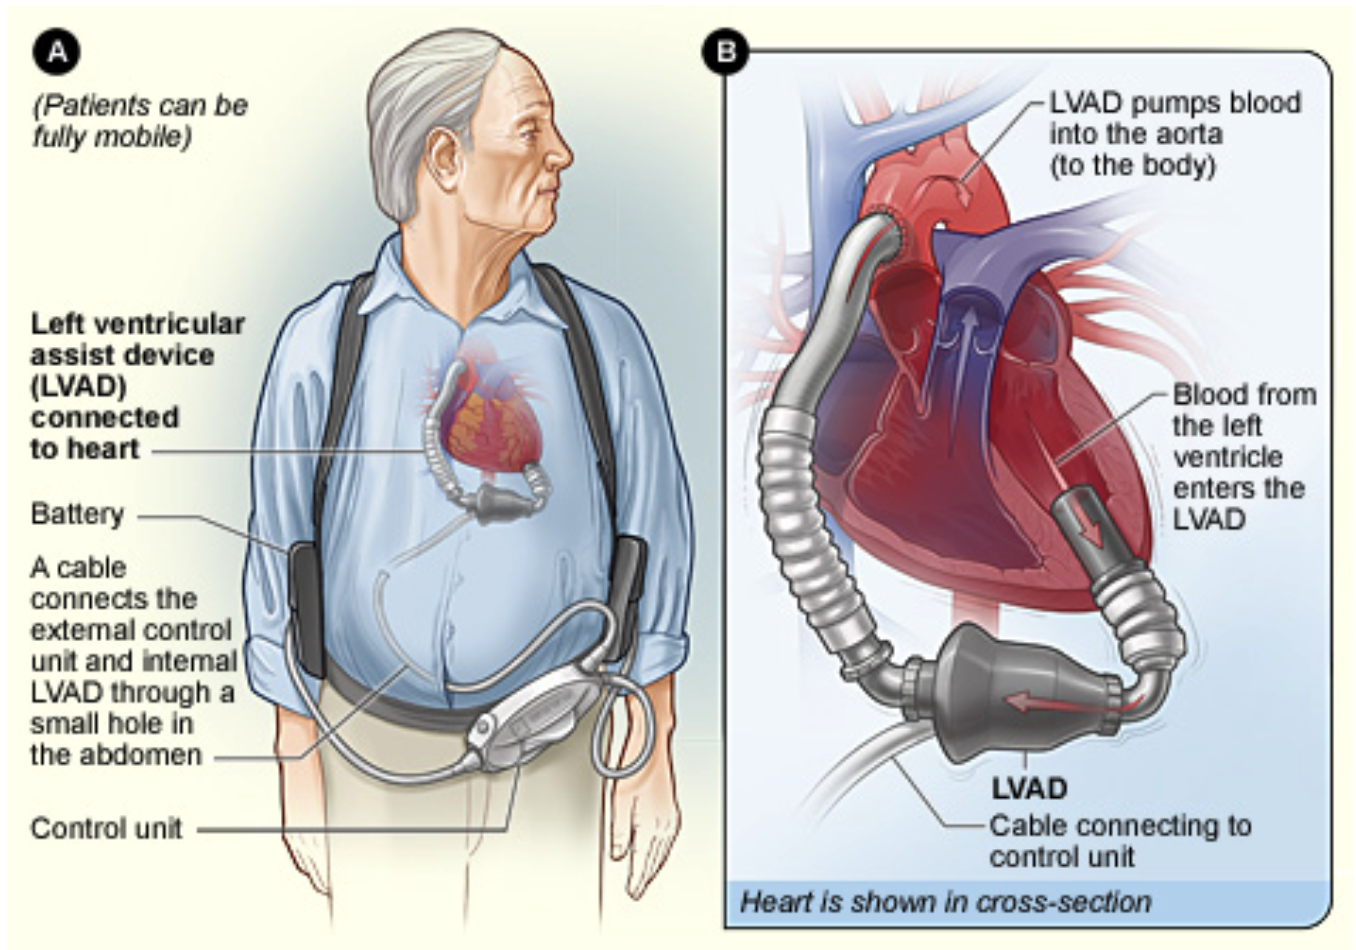 Anatomy of the LVAD